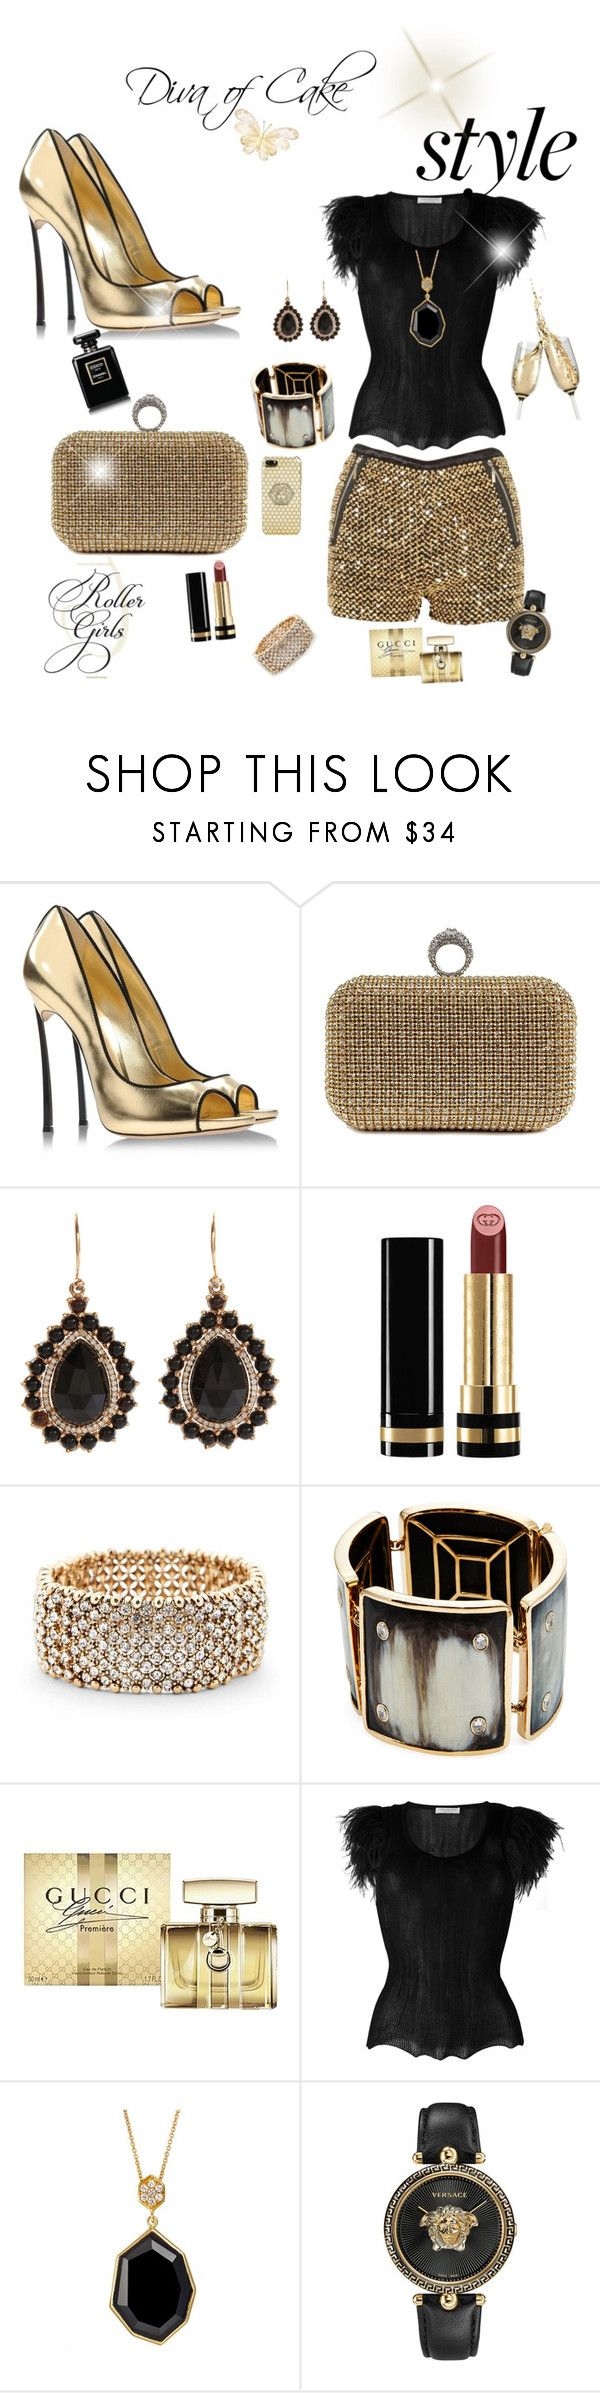 """Sexy and Elegant outfit black and gold"" by Diva of Cake  featuring Casadei, Irene Neuwirth, Gucci, Sole Society, Maiyet, Philosophy di Lorenzo Serafini, SOPHIE MILLER and Versace"